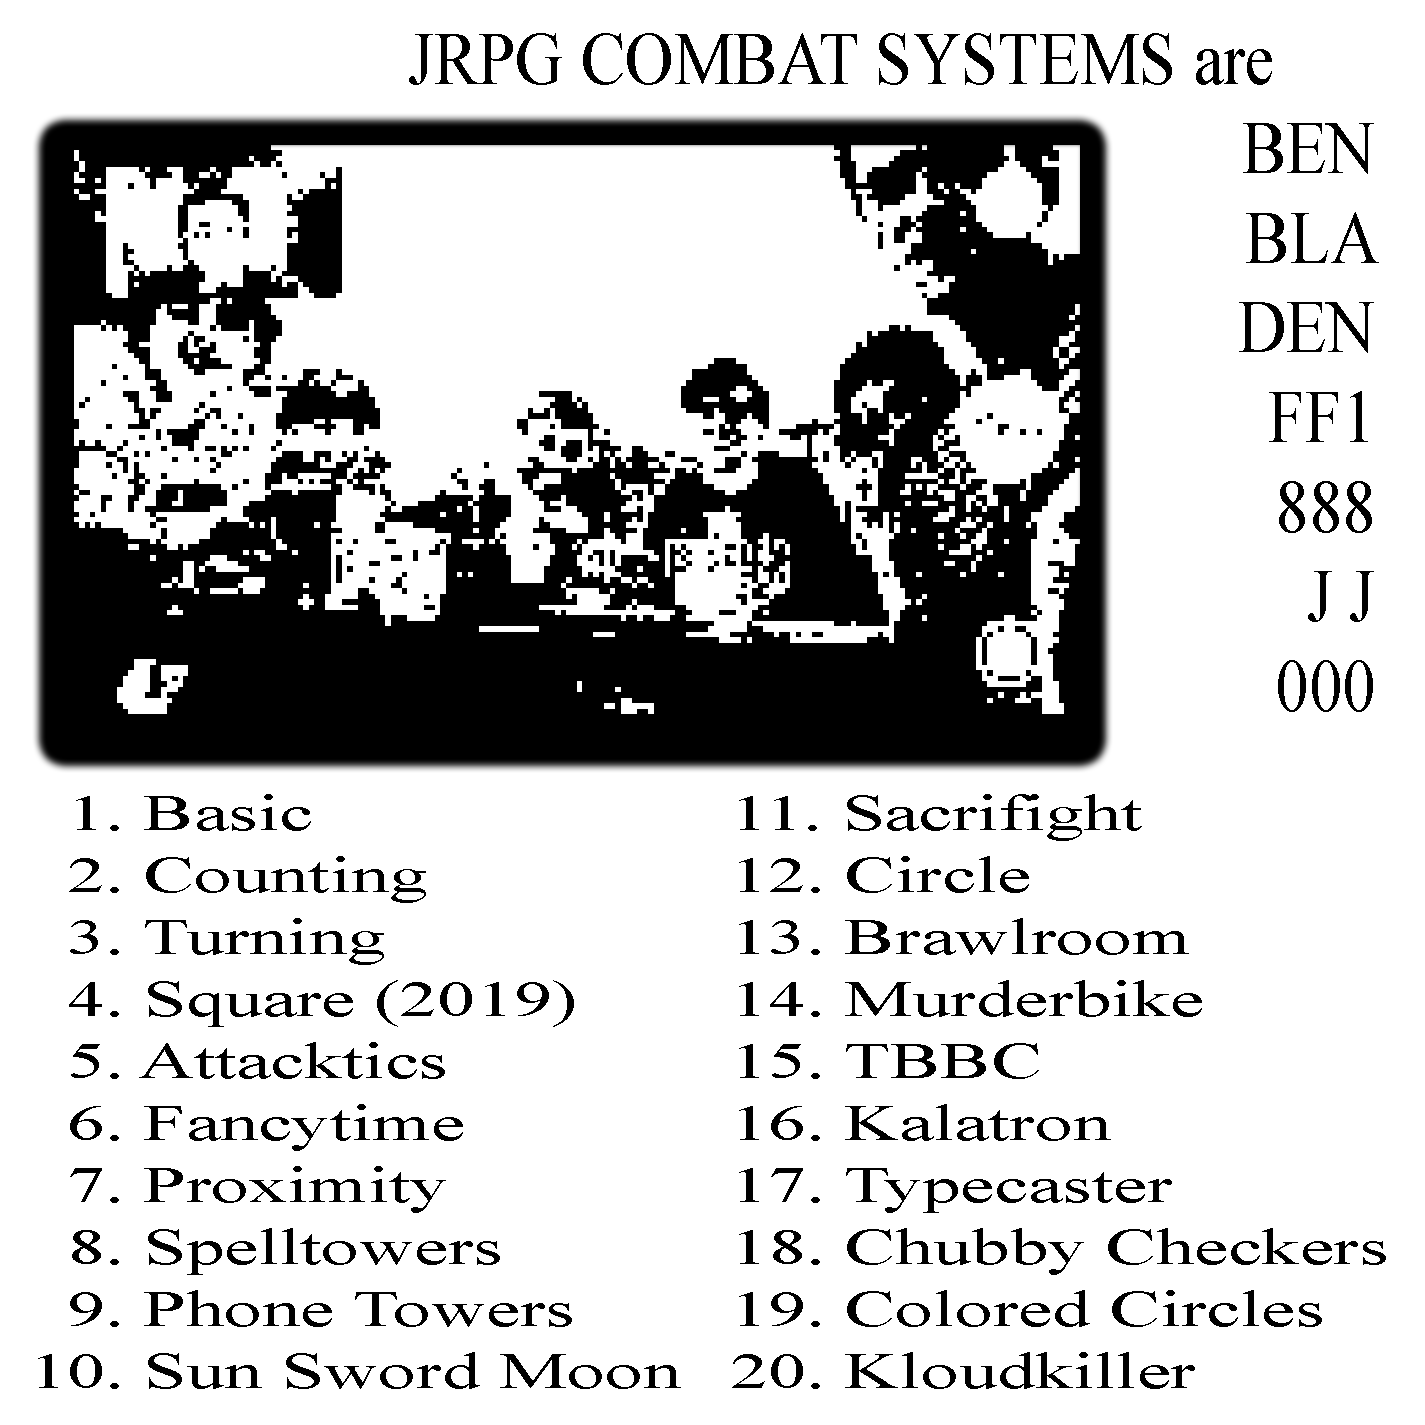 Beat Tape By Jrpg Combat Systems